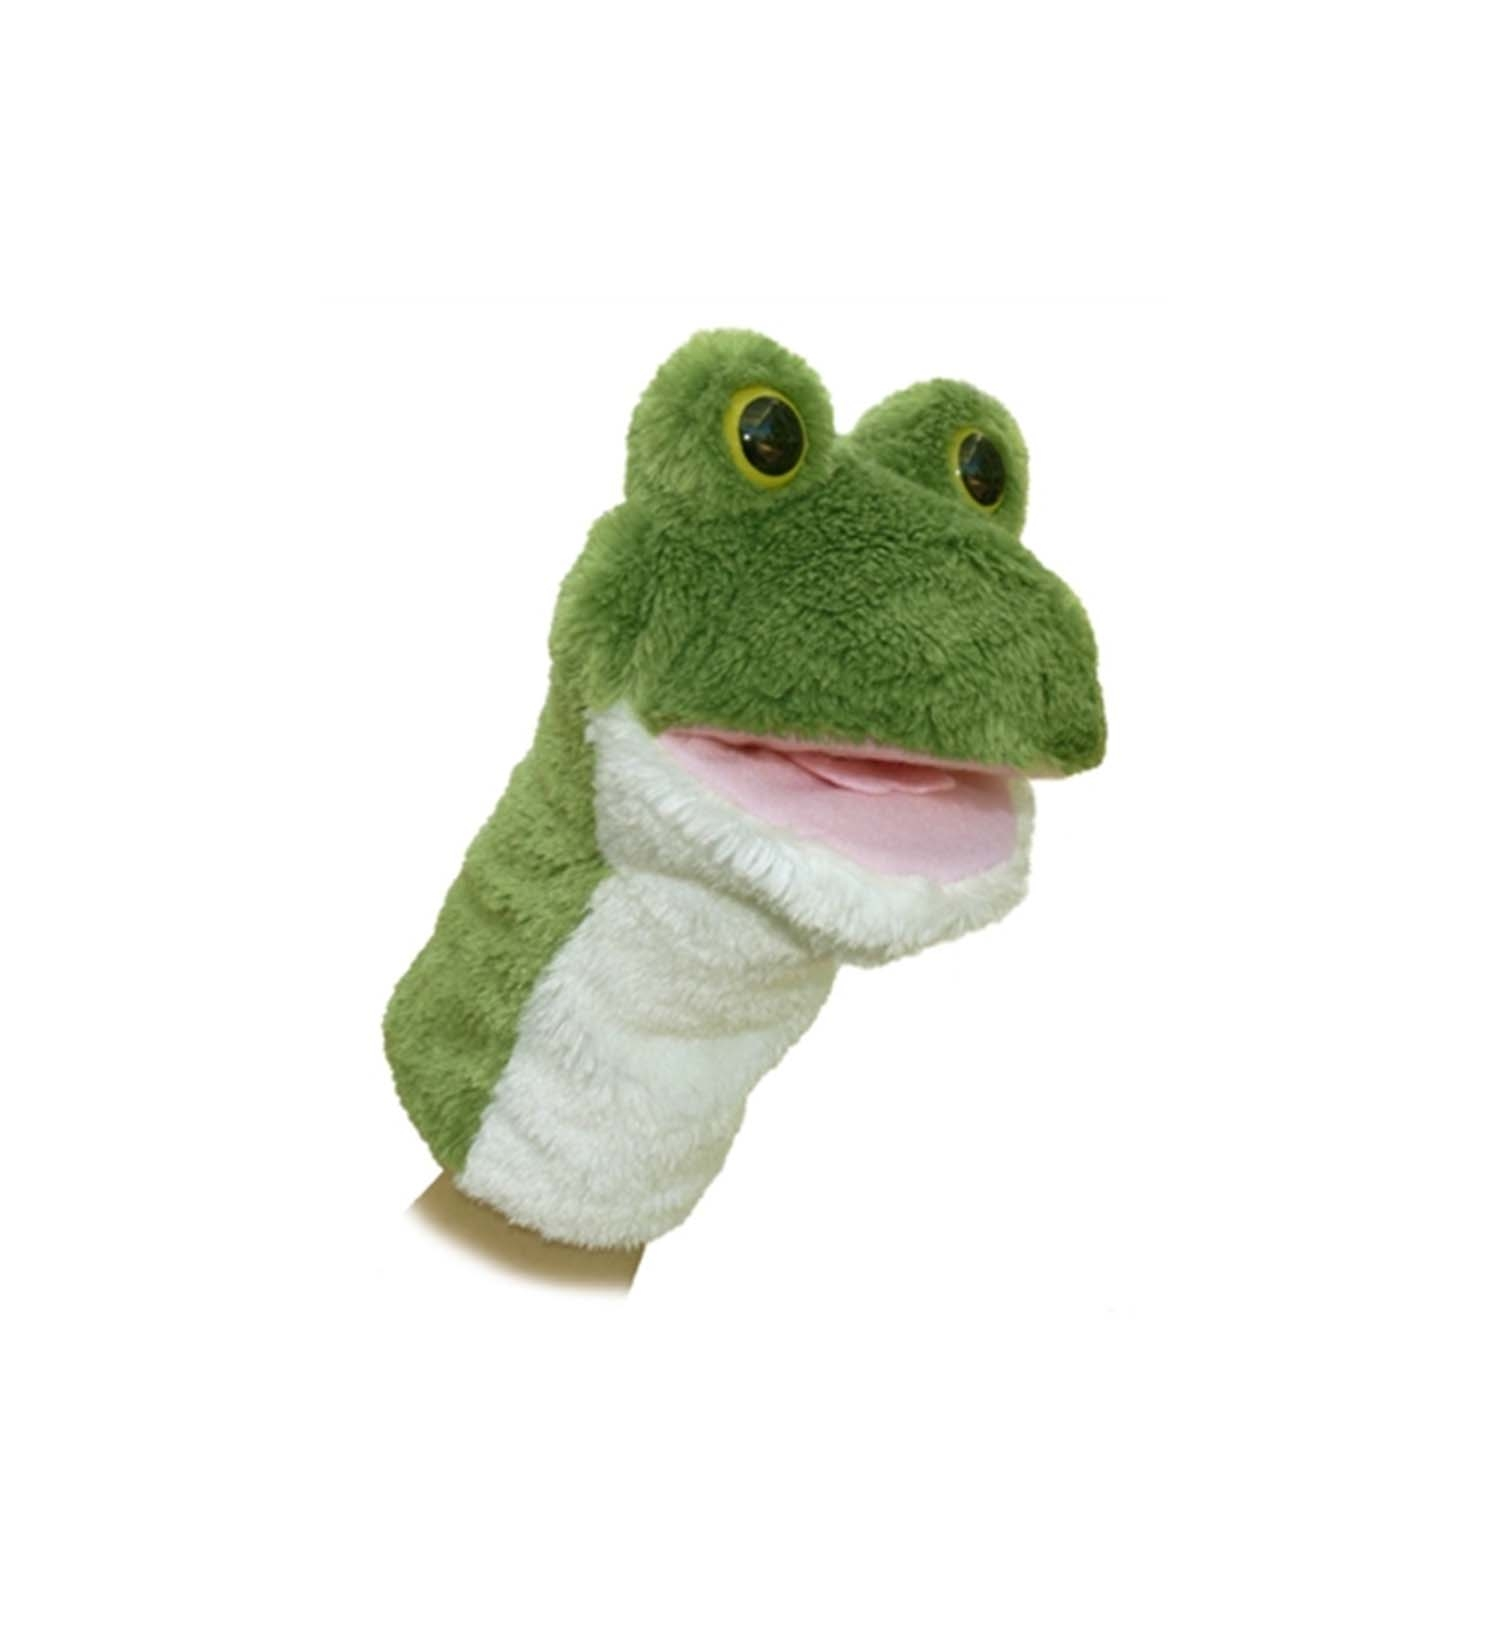 LILY THE PLUSH FROG PUPPET